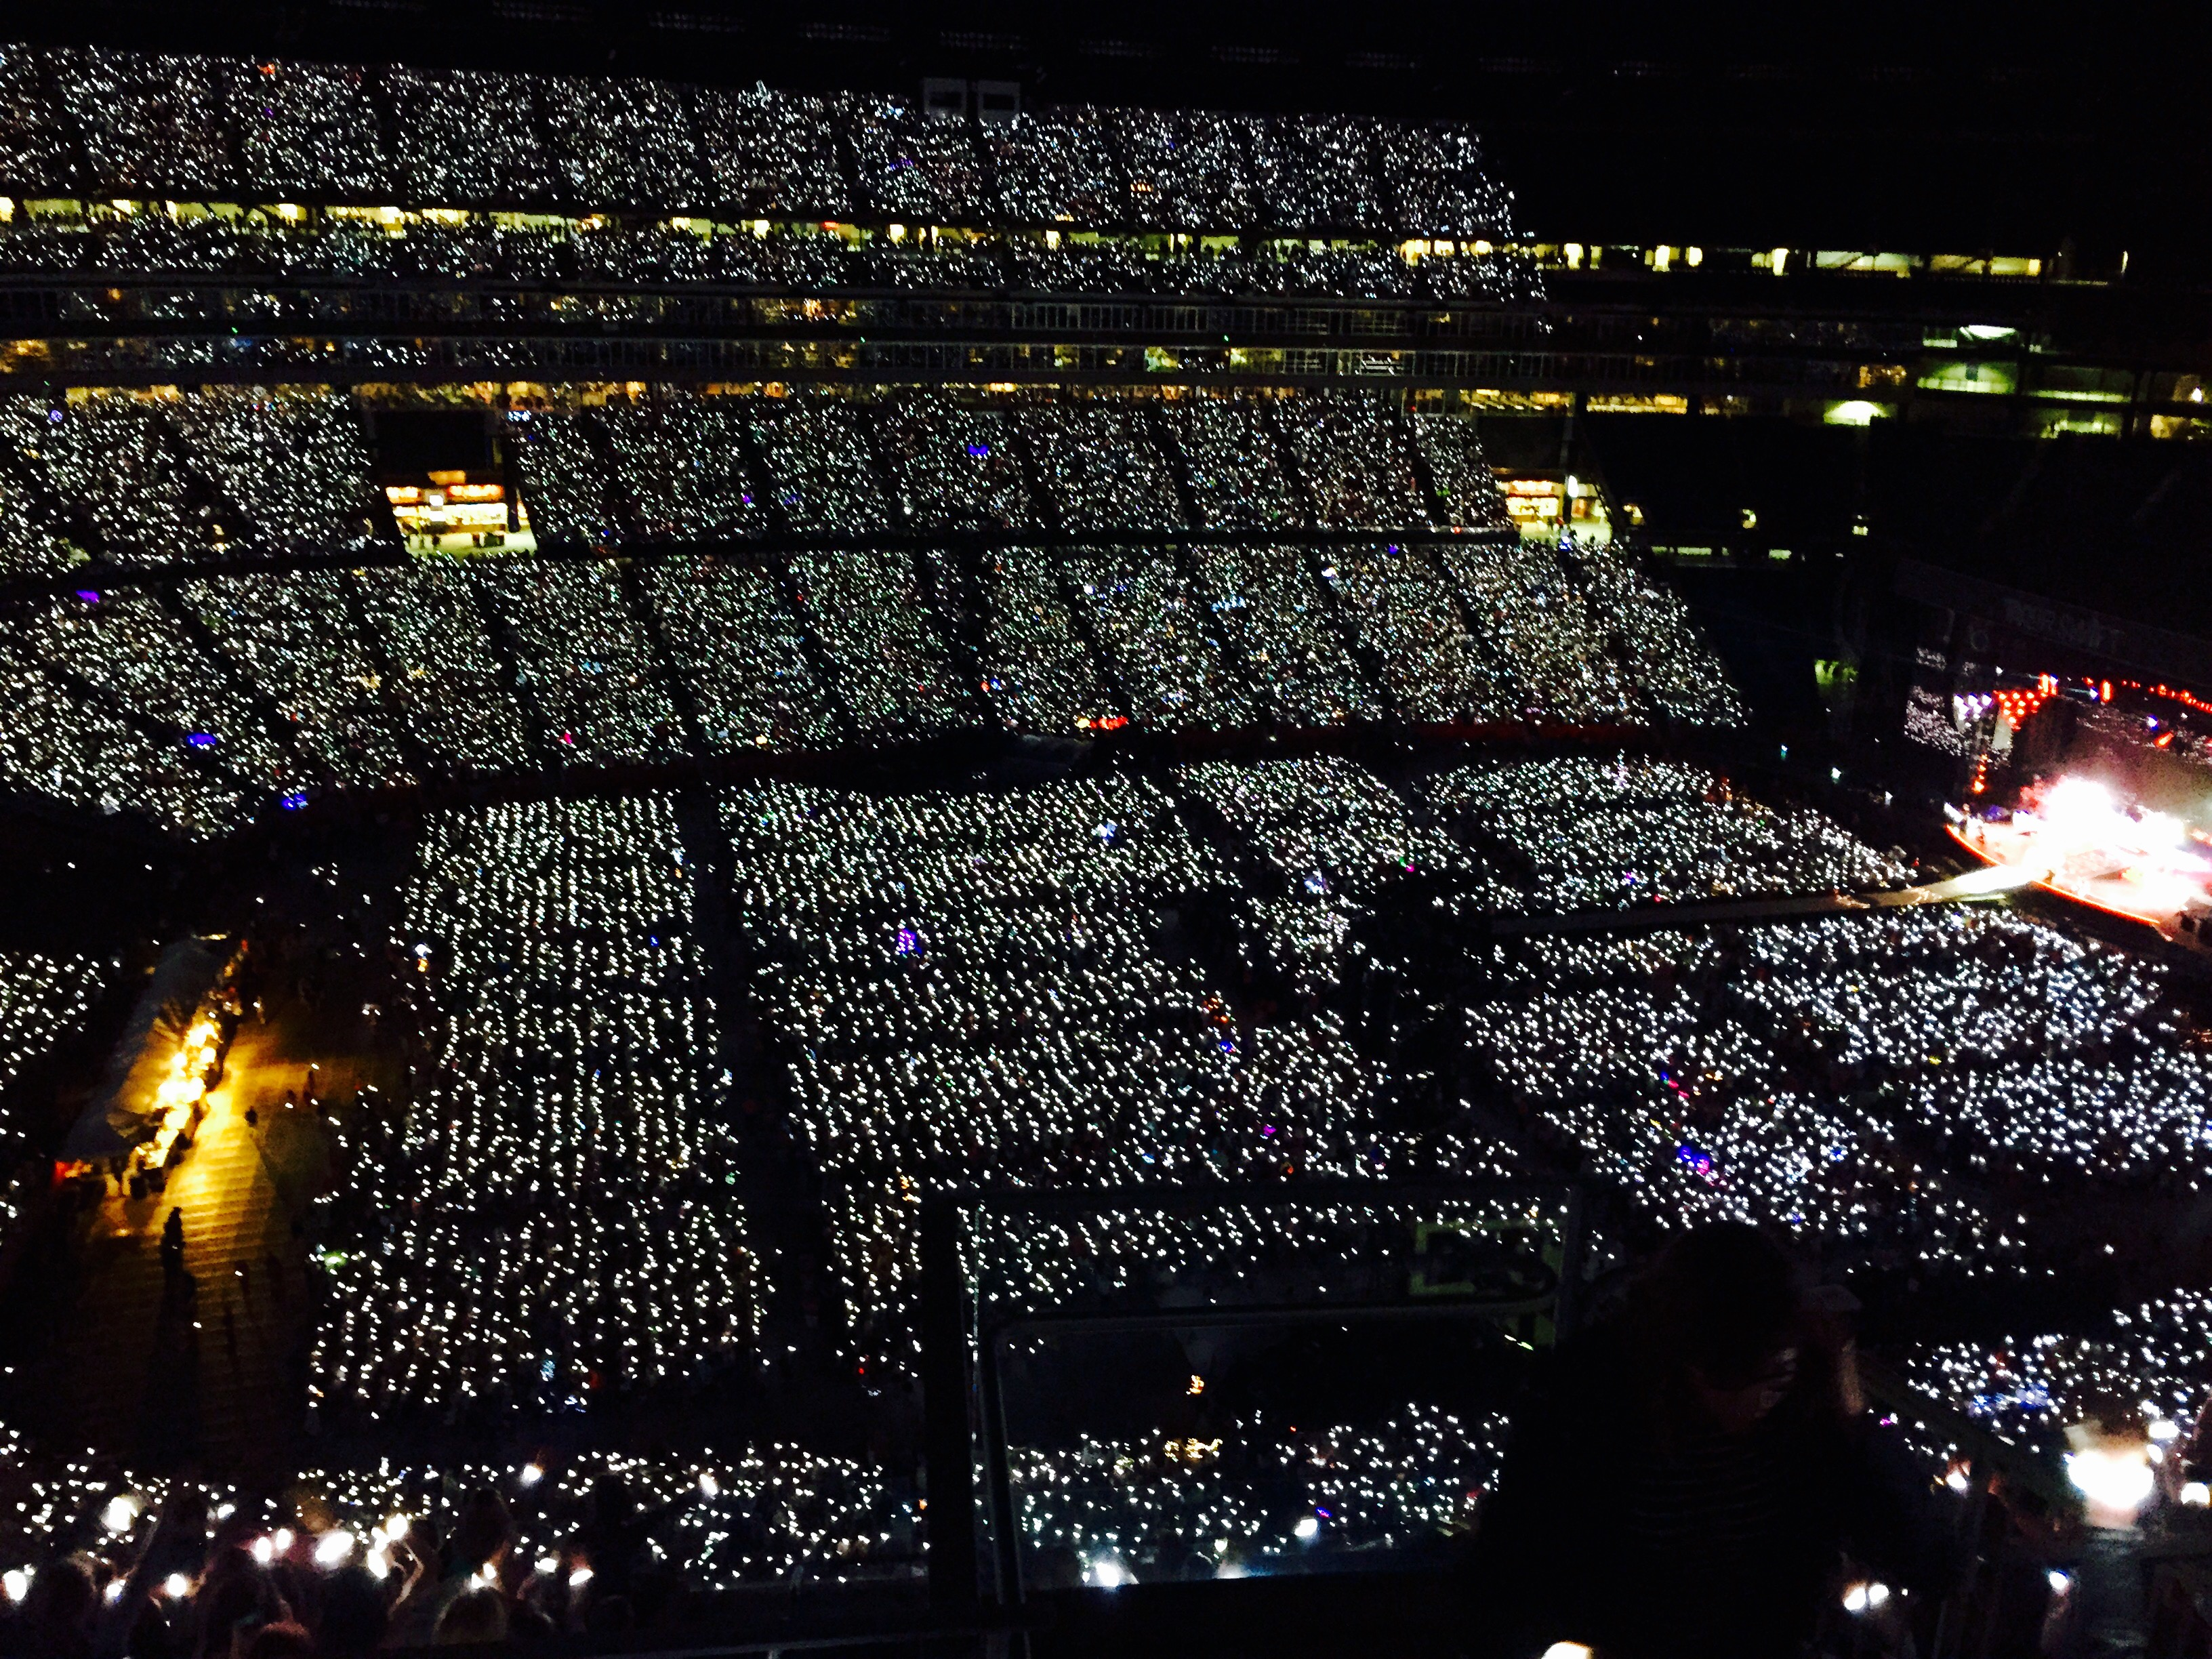 60,000 wrist bands lit up